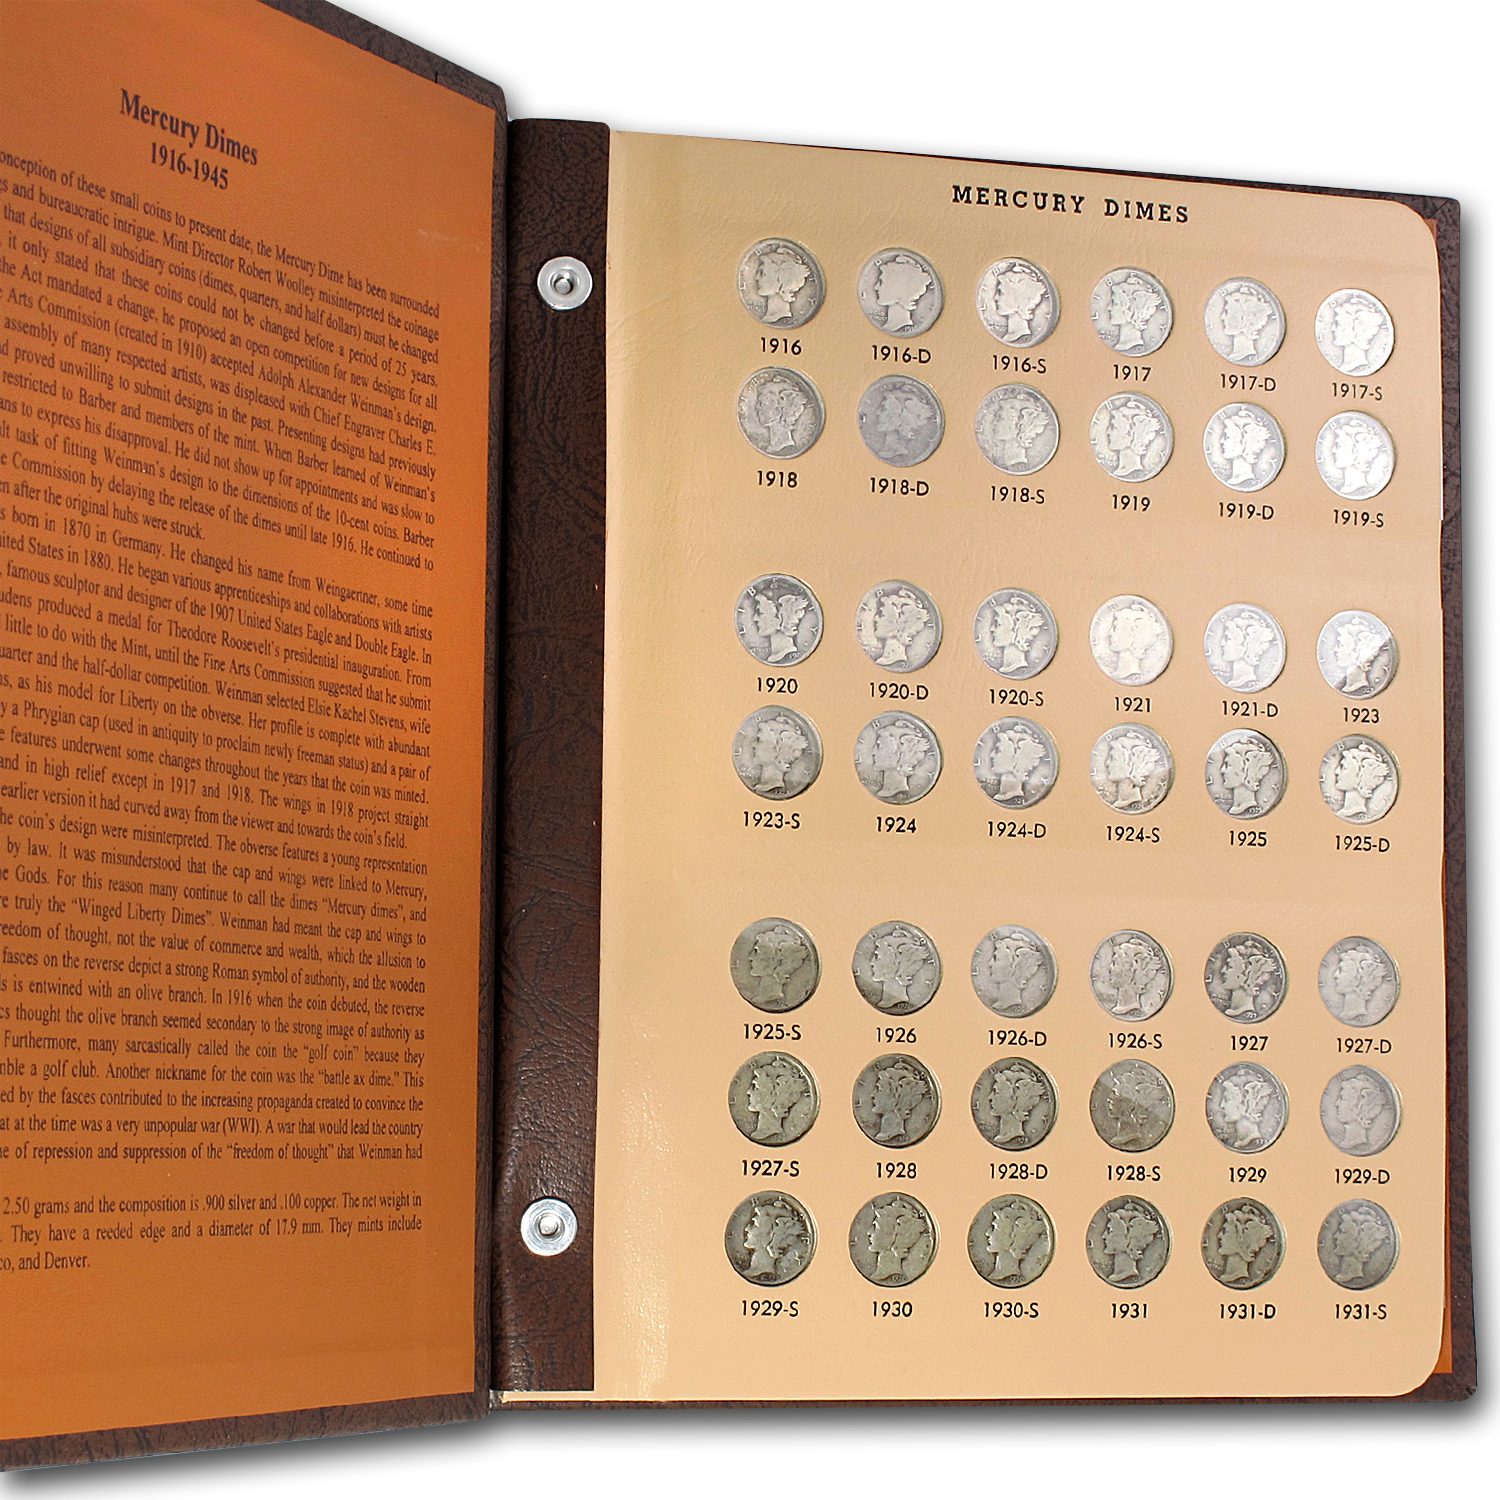 1916 - 1945 COMPLETE MERCURY DIME SET in Dansco Album